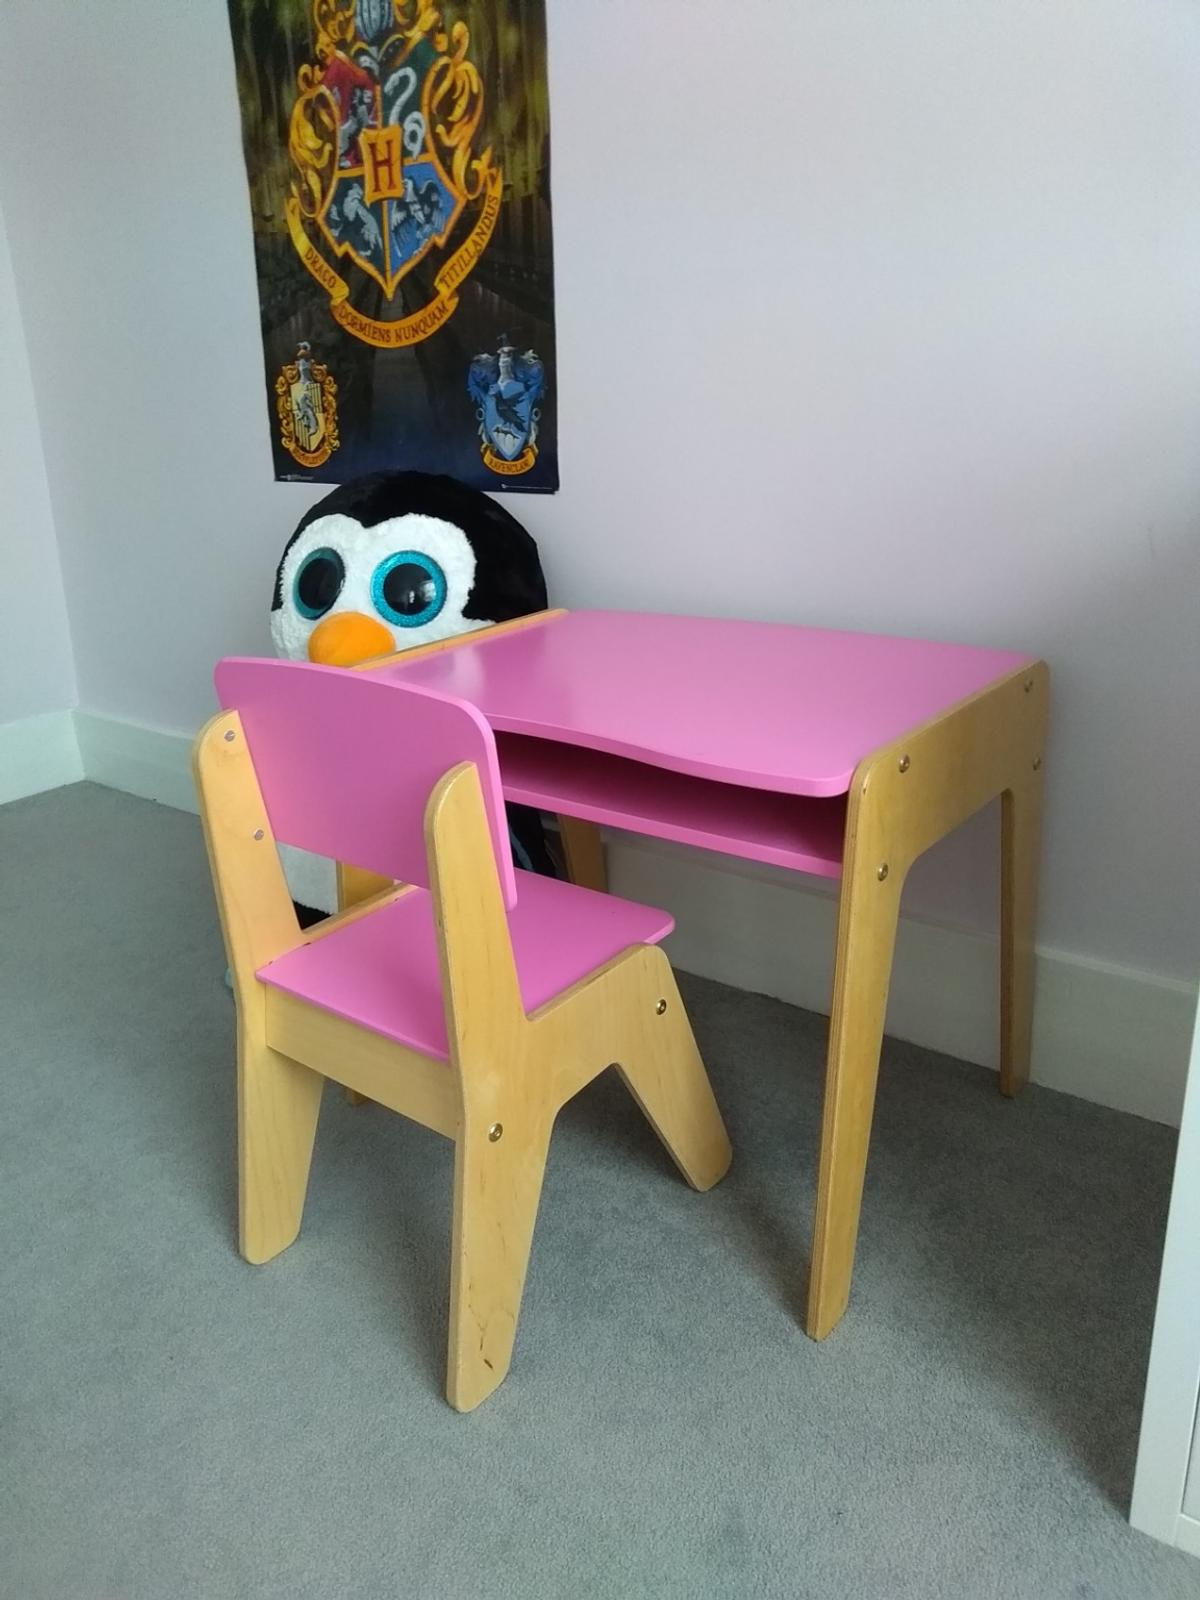 Marvelous Children Pink Wooden Desk And Chair In W14 Fulham For 40 00 Gamerscity Chair Design For Home Gamerscityorg